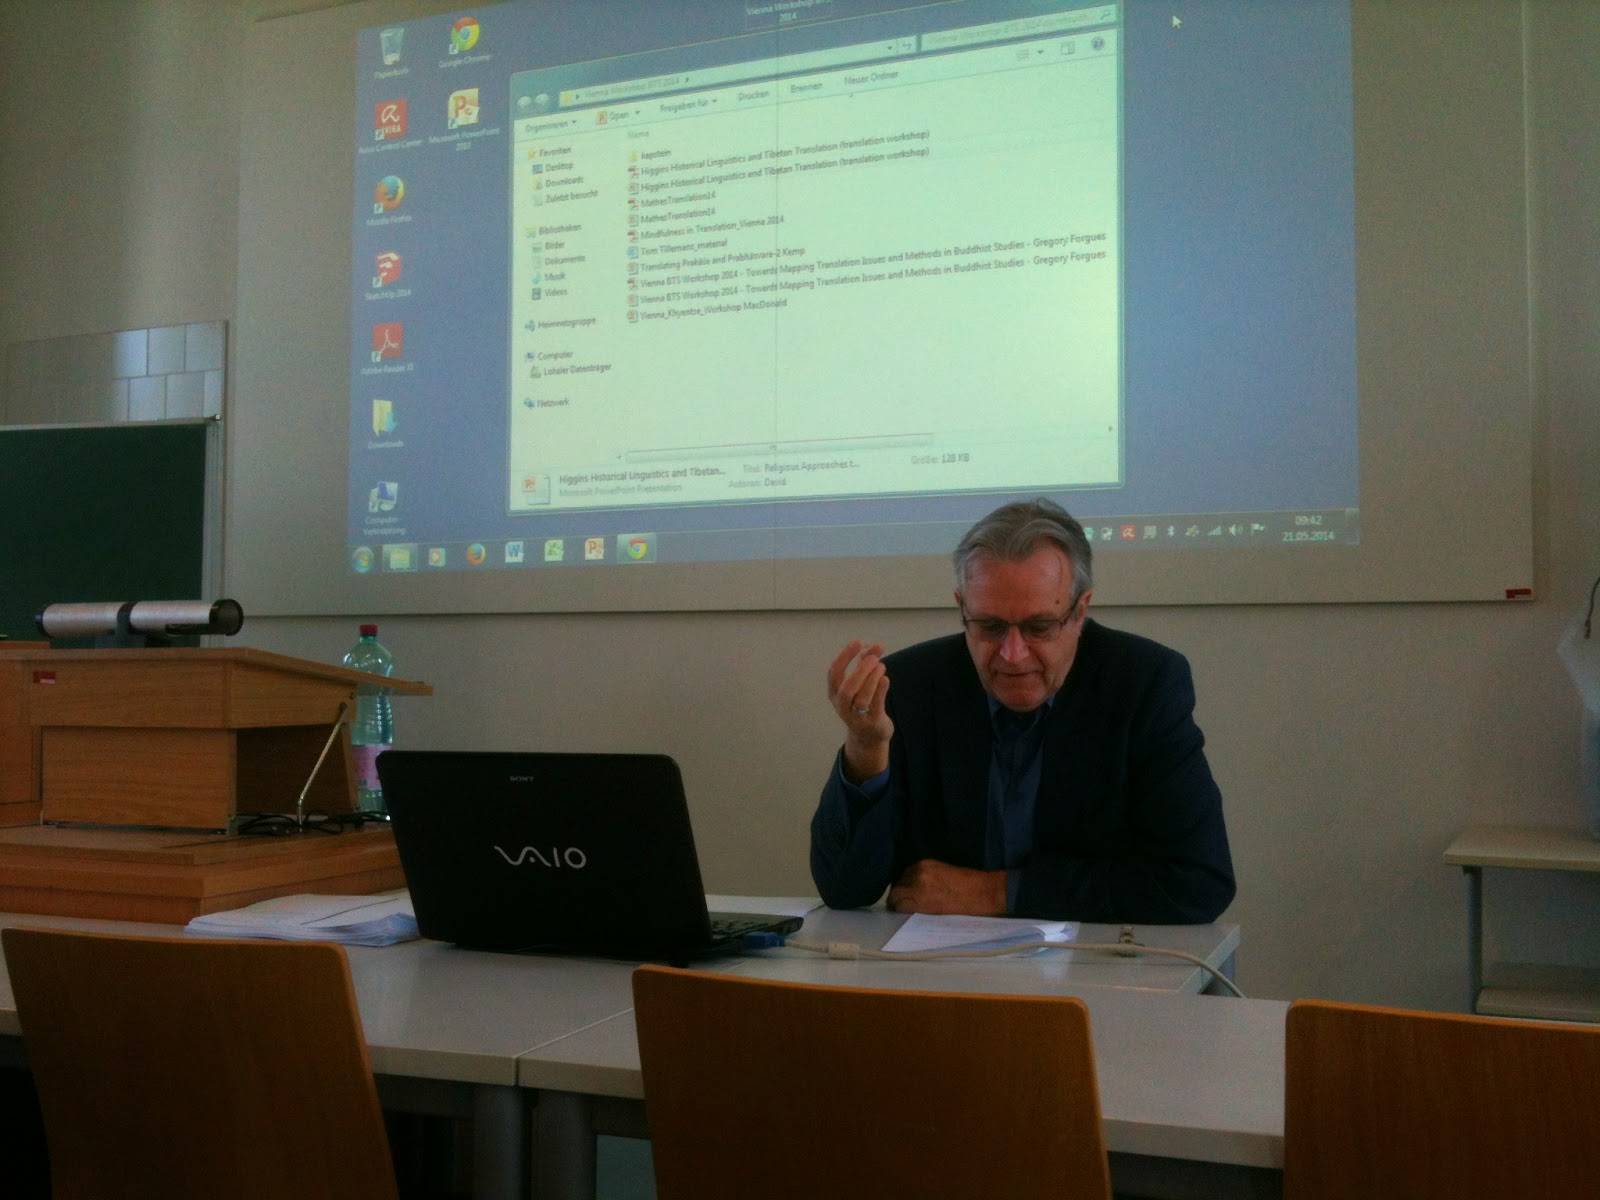 Prof. Martin Gaenszle during his presentation at the Buddhist Translation workshop.